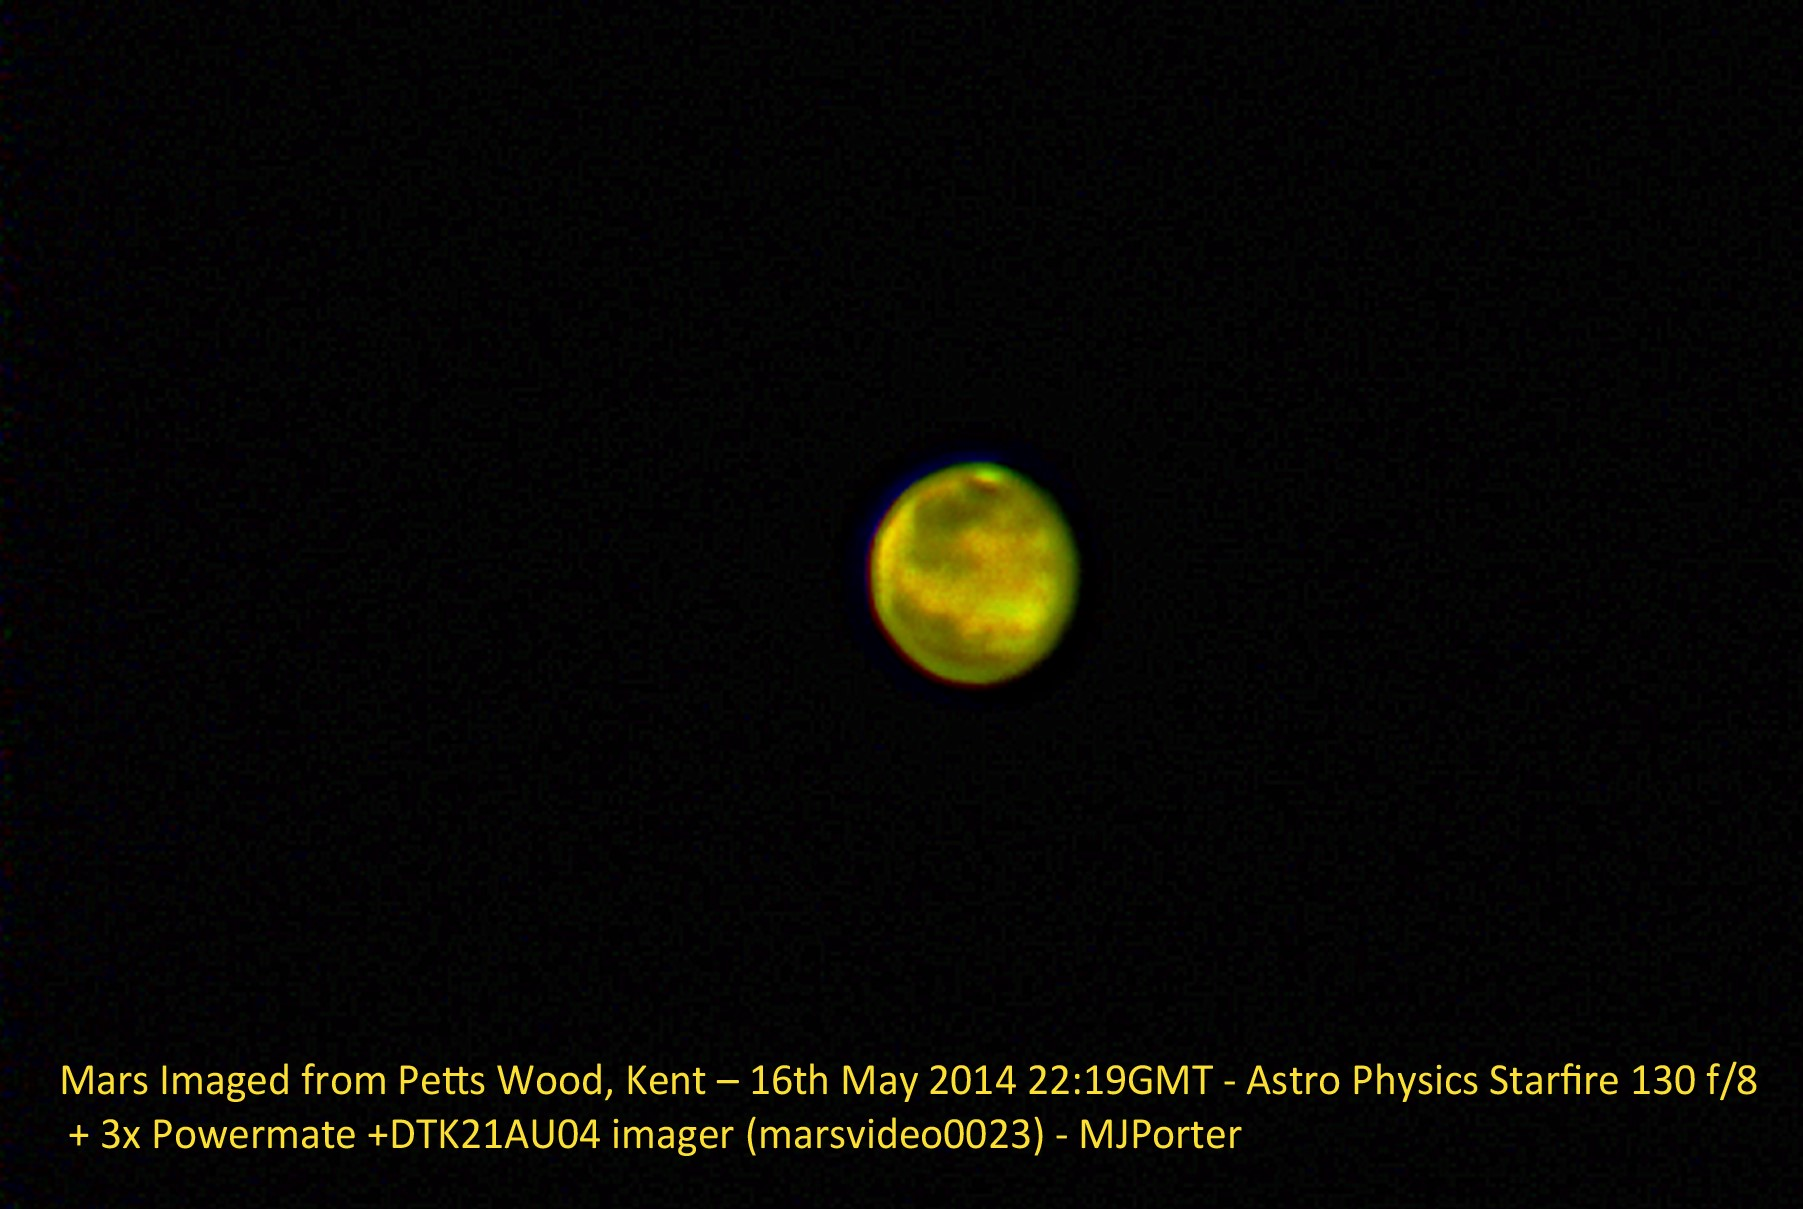 Mars imaged from Petts Wood by Malcolm Porter